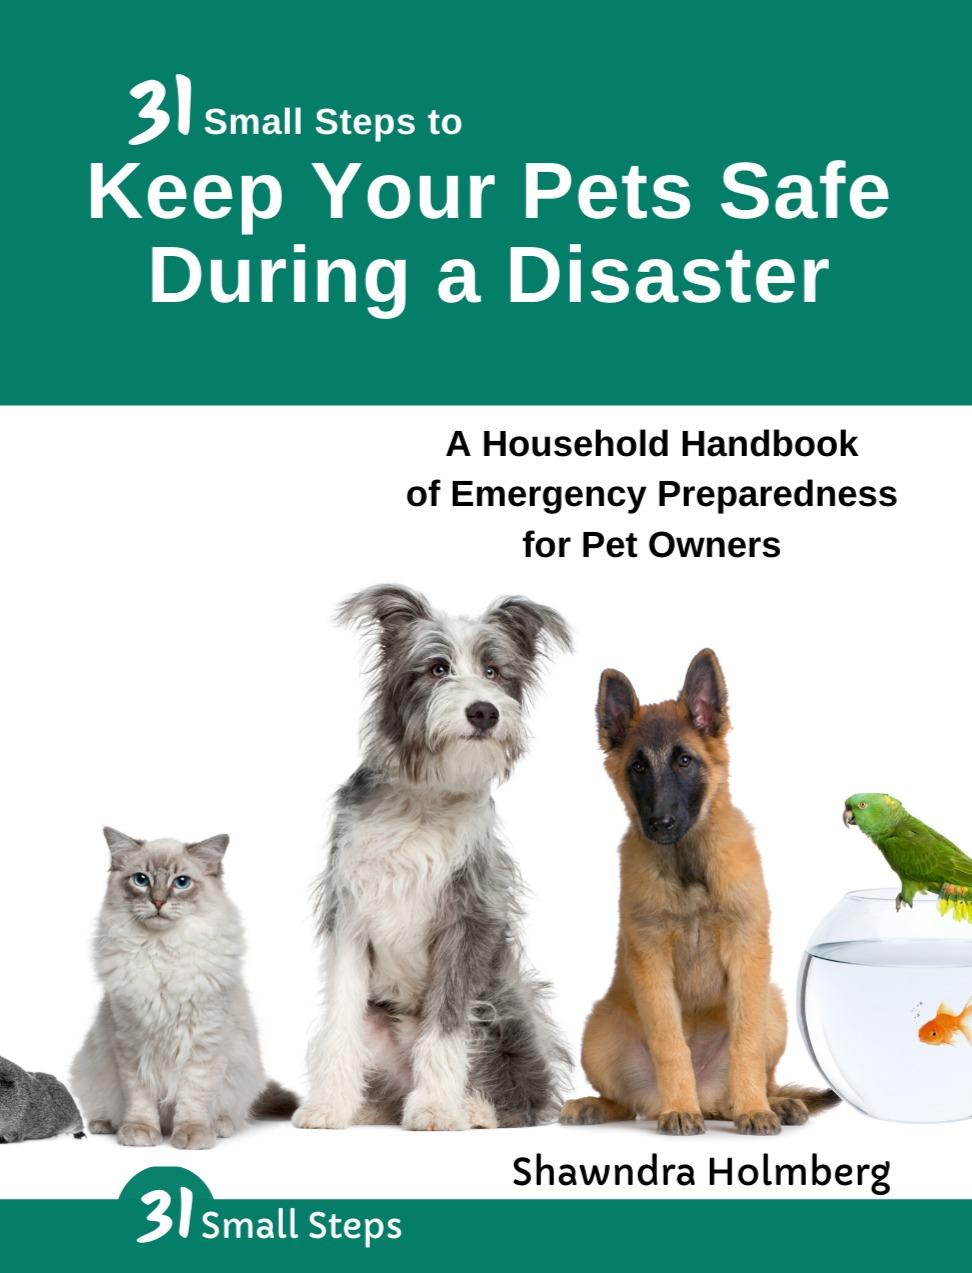 31 Small Steps to Keep Your Pets Safe During a Disaster by Shawndra Holmberg